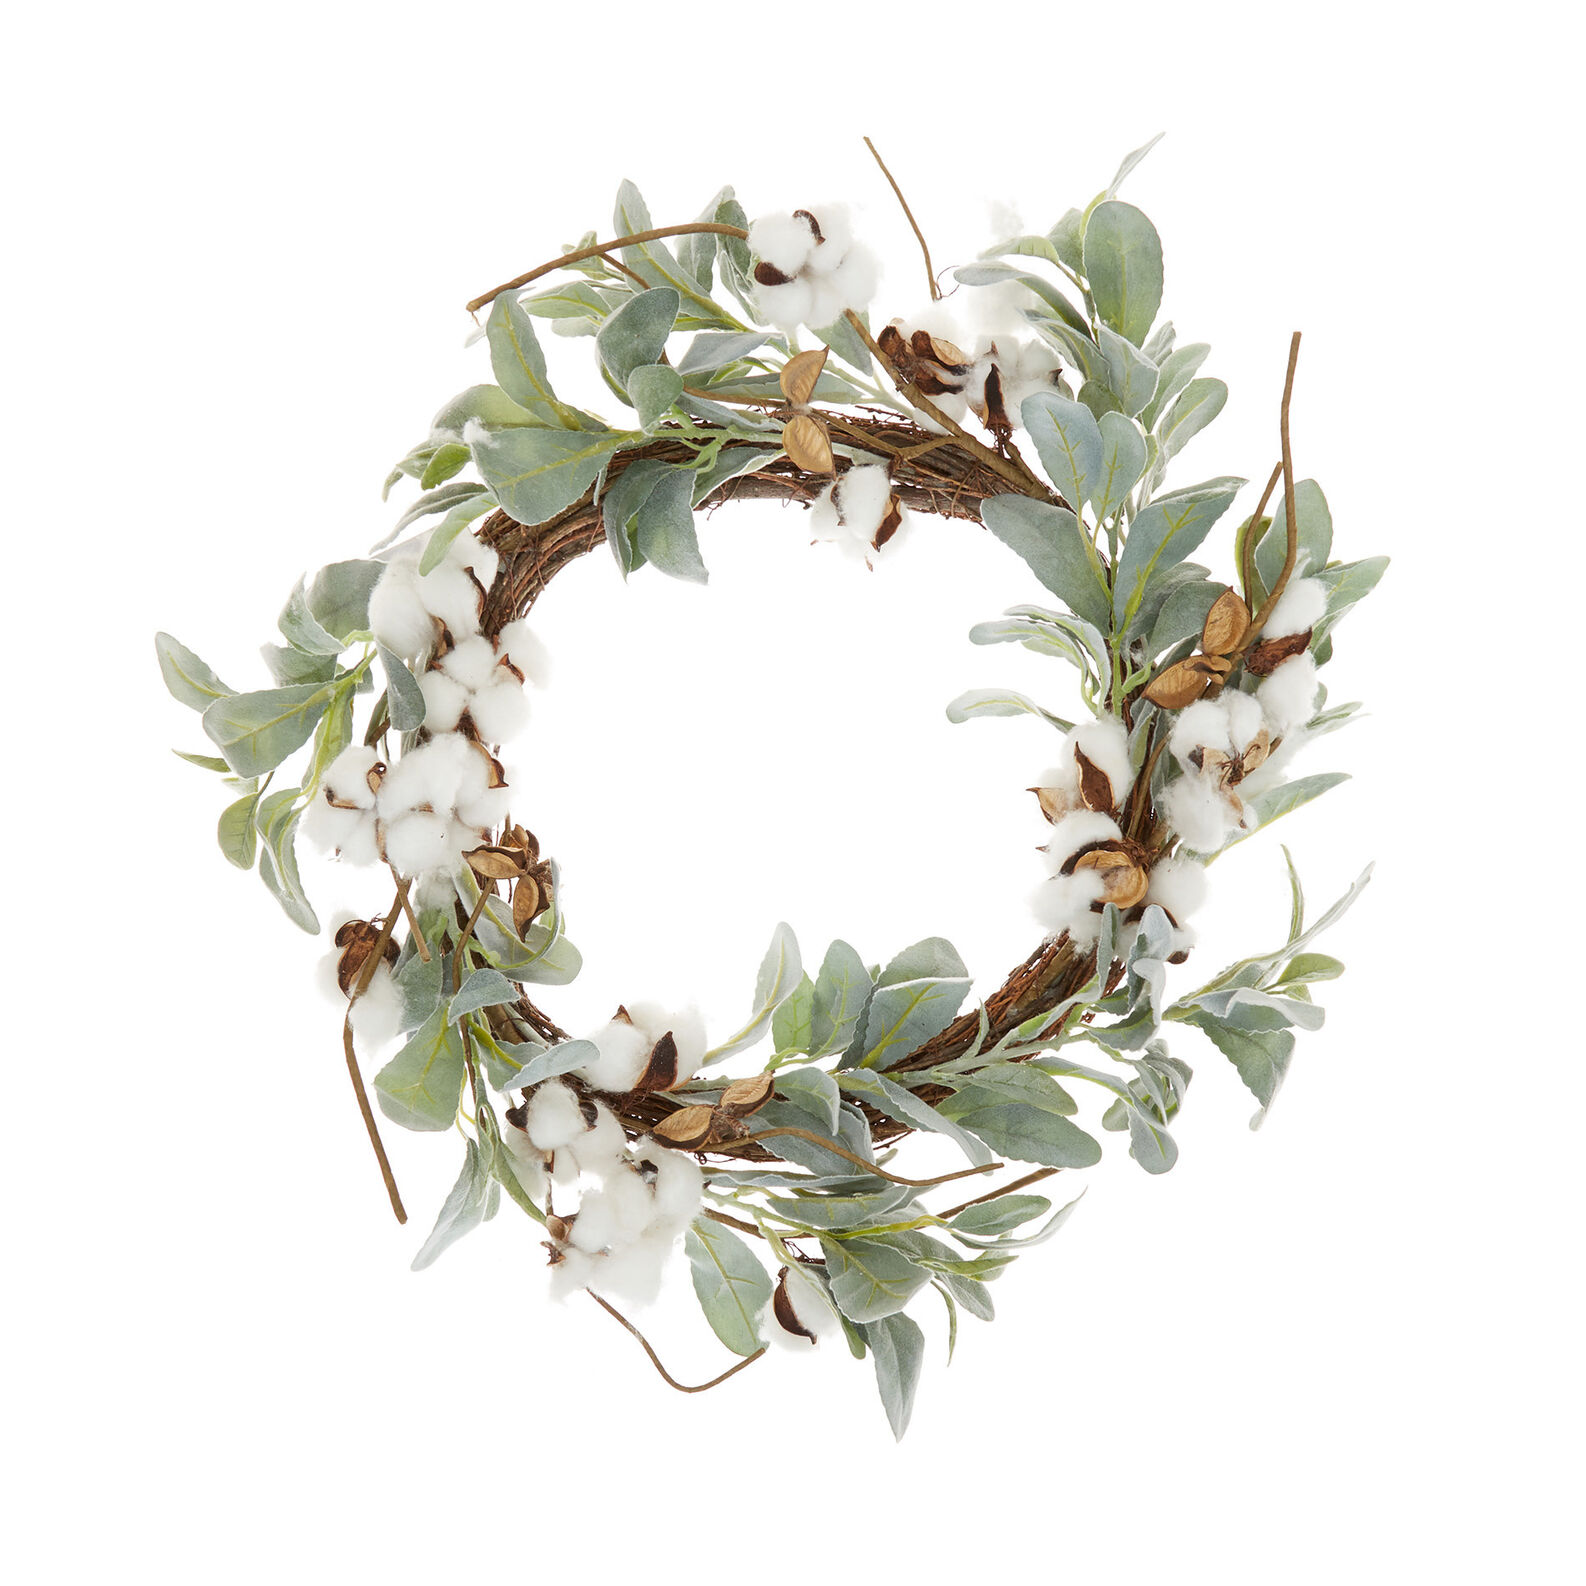 Decorative wreath with cotton flowers